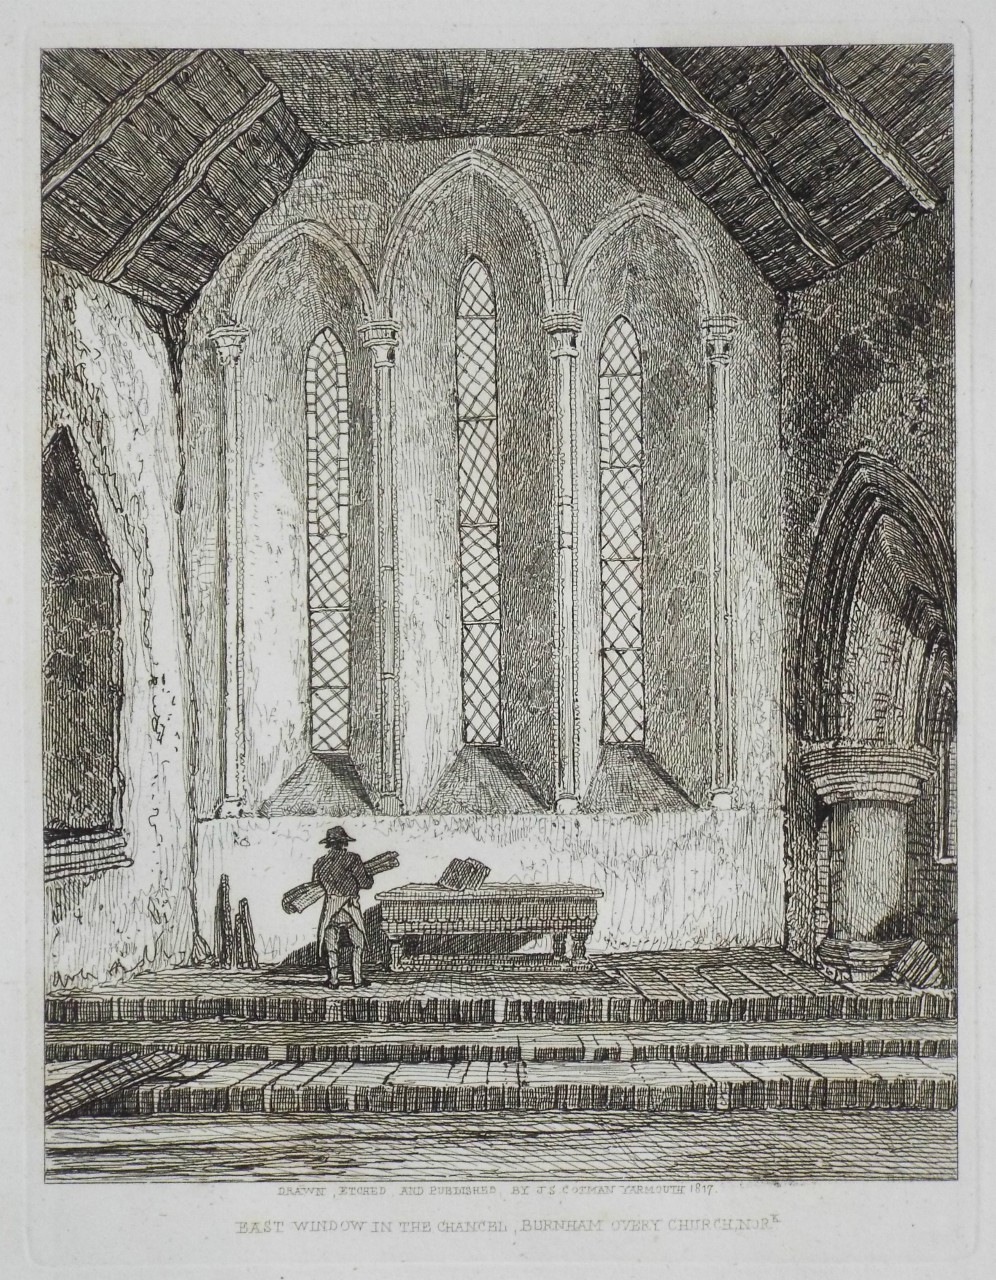 Etching - East Window in the Chancel, Burnham Overy Church. - Cotman